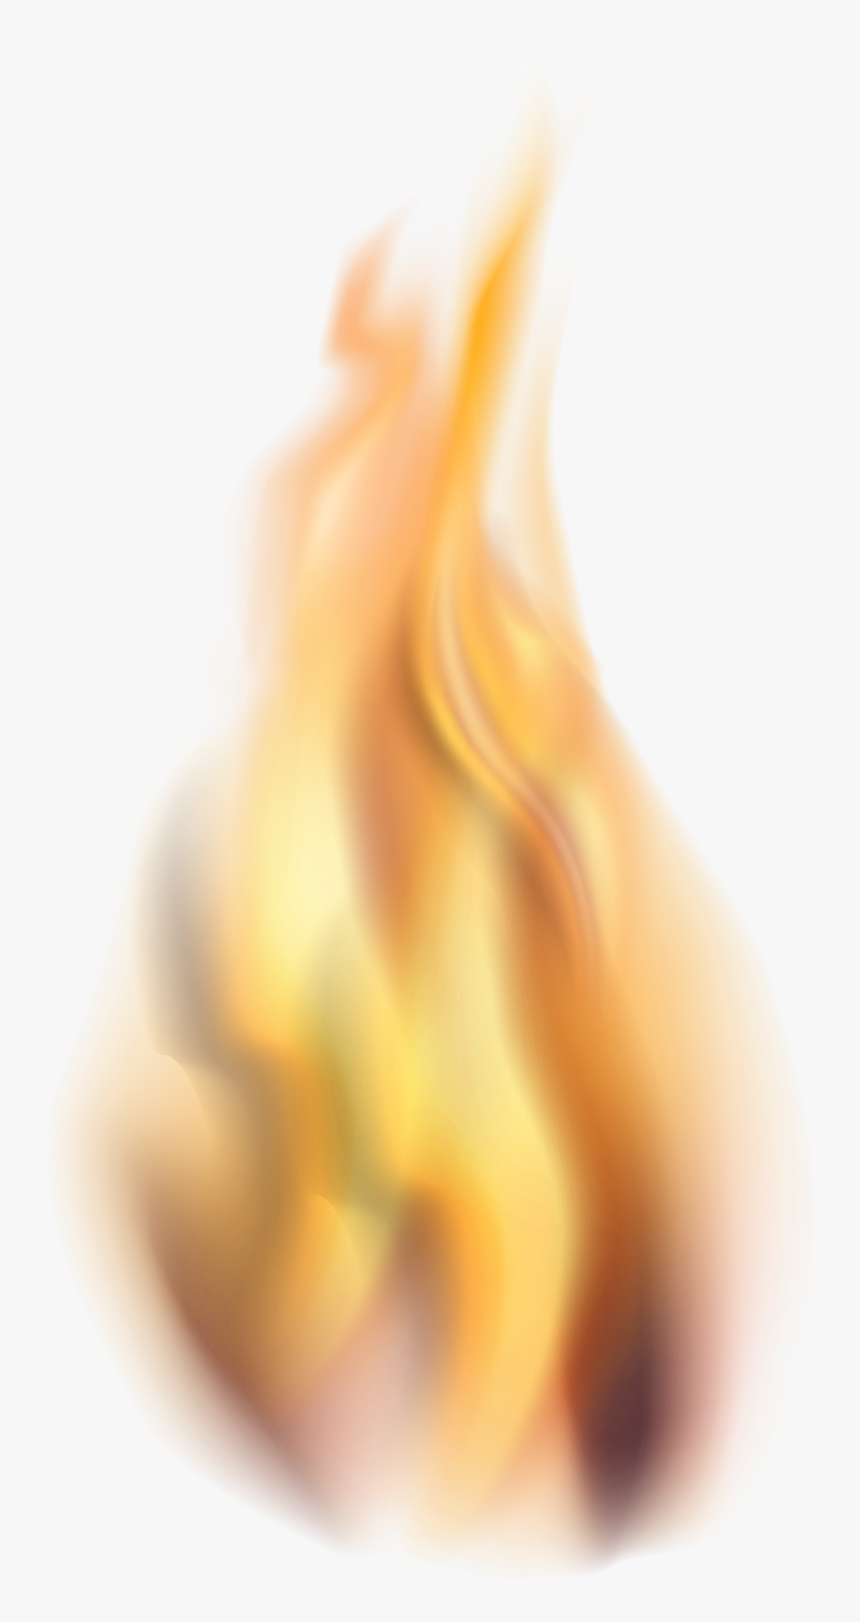 Fire Png Of Hand, Transparent Png, Free Download